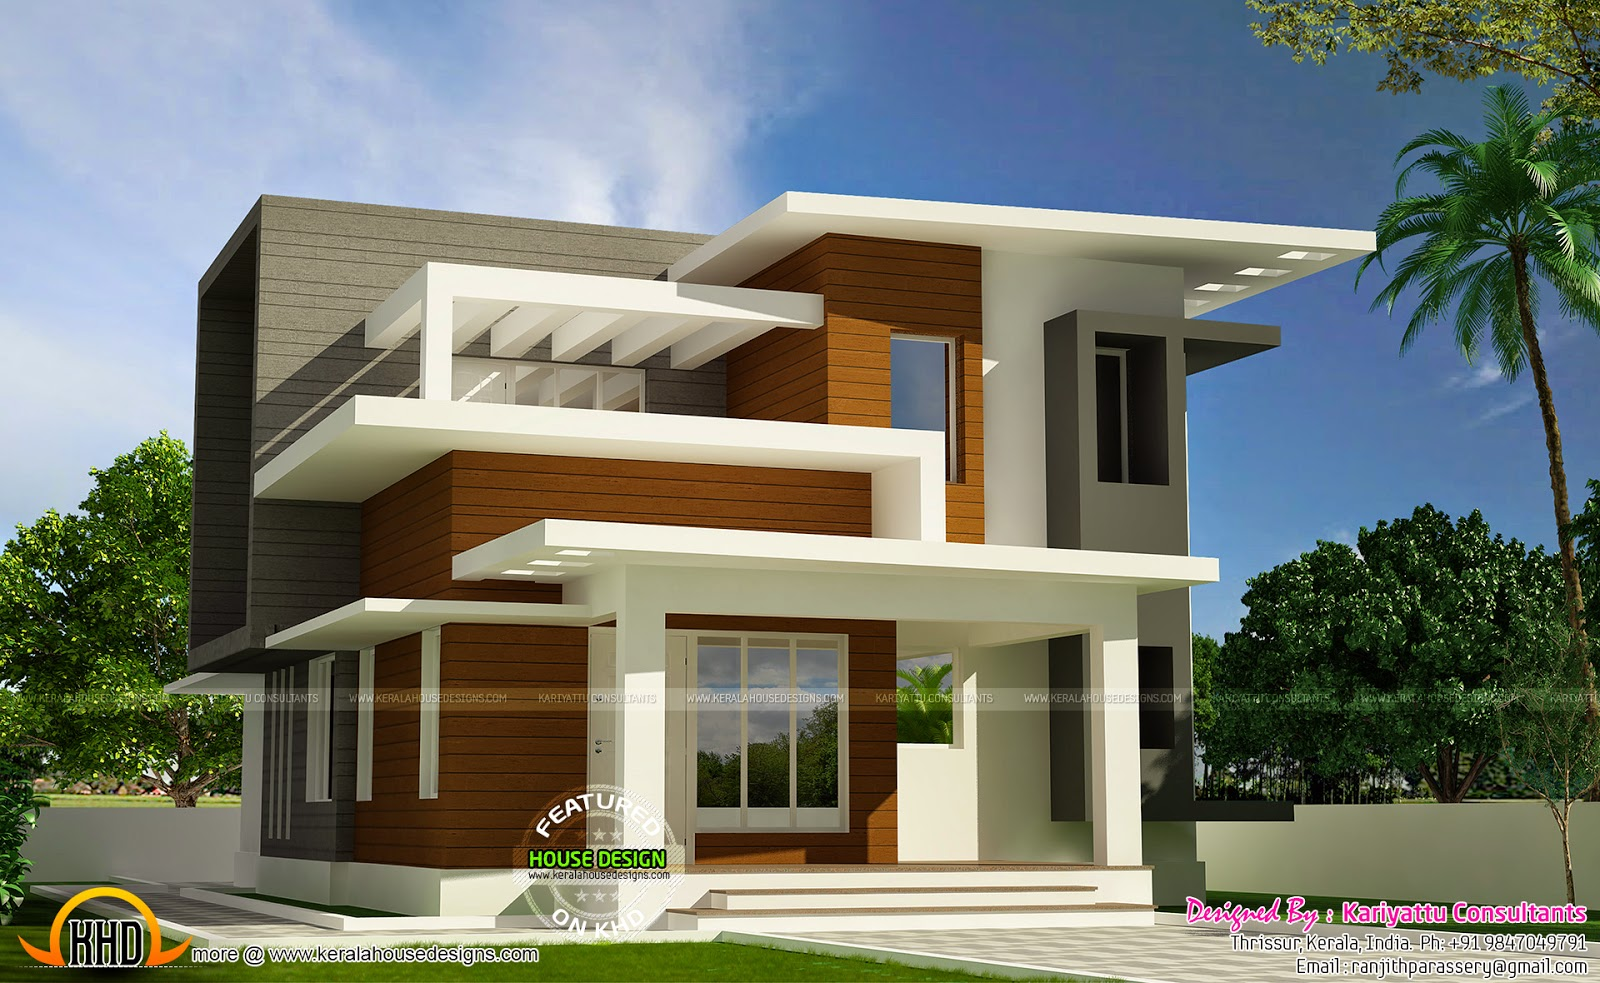 Luxury Homes House Plans Box Type House Design 30x60 House Floor Plans